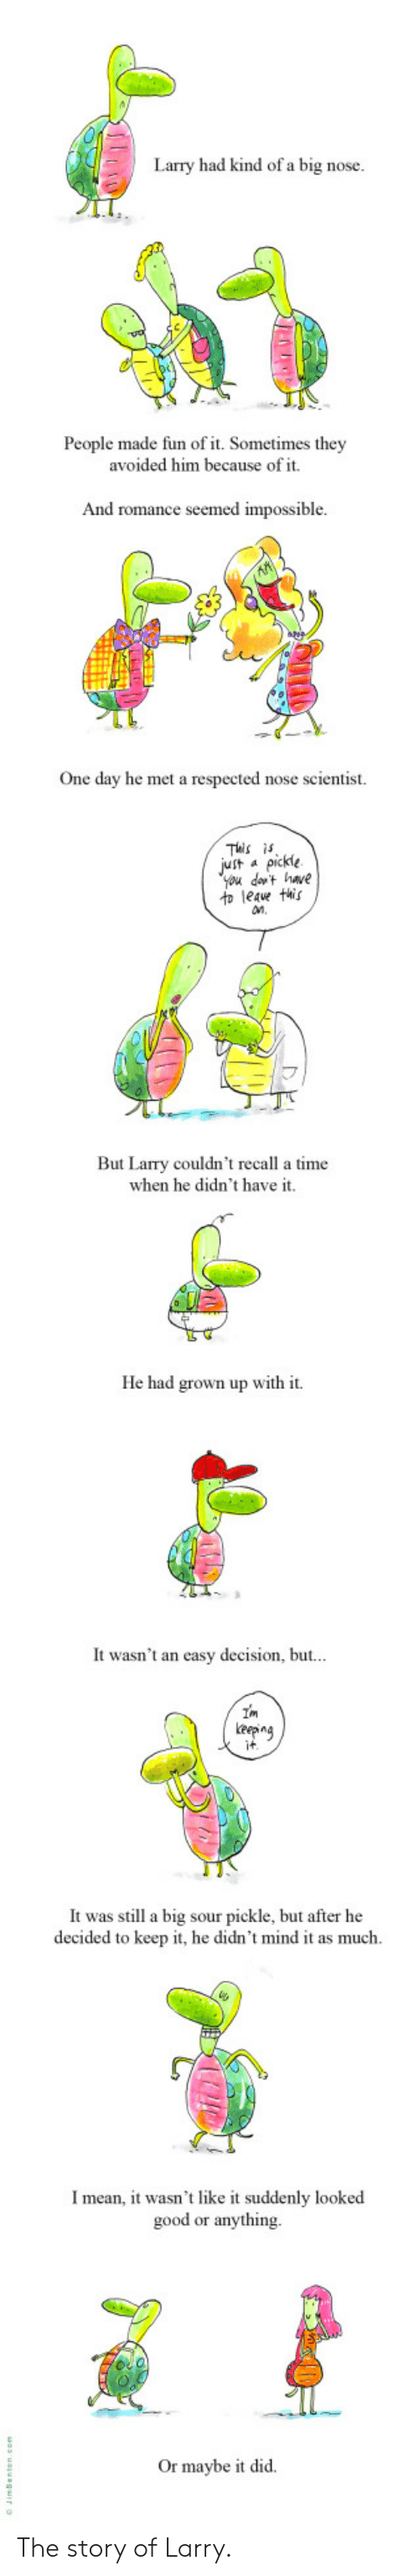 dat: Larry had kind of a big nose.  People made fun of it. Sometimes they  avoided him because of it.  And romance seemed impossible  One day he met a respected nose scientist.  This is  Jut apickle  you dat have  to leave this  n.  But Larry couldn't recall a time  when he didn't have it.  He had grown up with it  It wasn't an easy decision, but...  Im  eepng  it  It was still a big sour pickle, but after he  decided to keep it, he didn't mind it as much  Imean, it wasn't like it suddenly looked  good or anything  Or maybe it did The story of Larry.